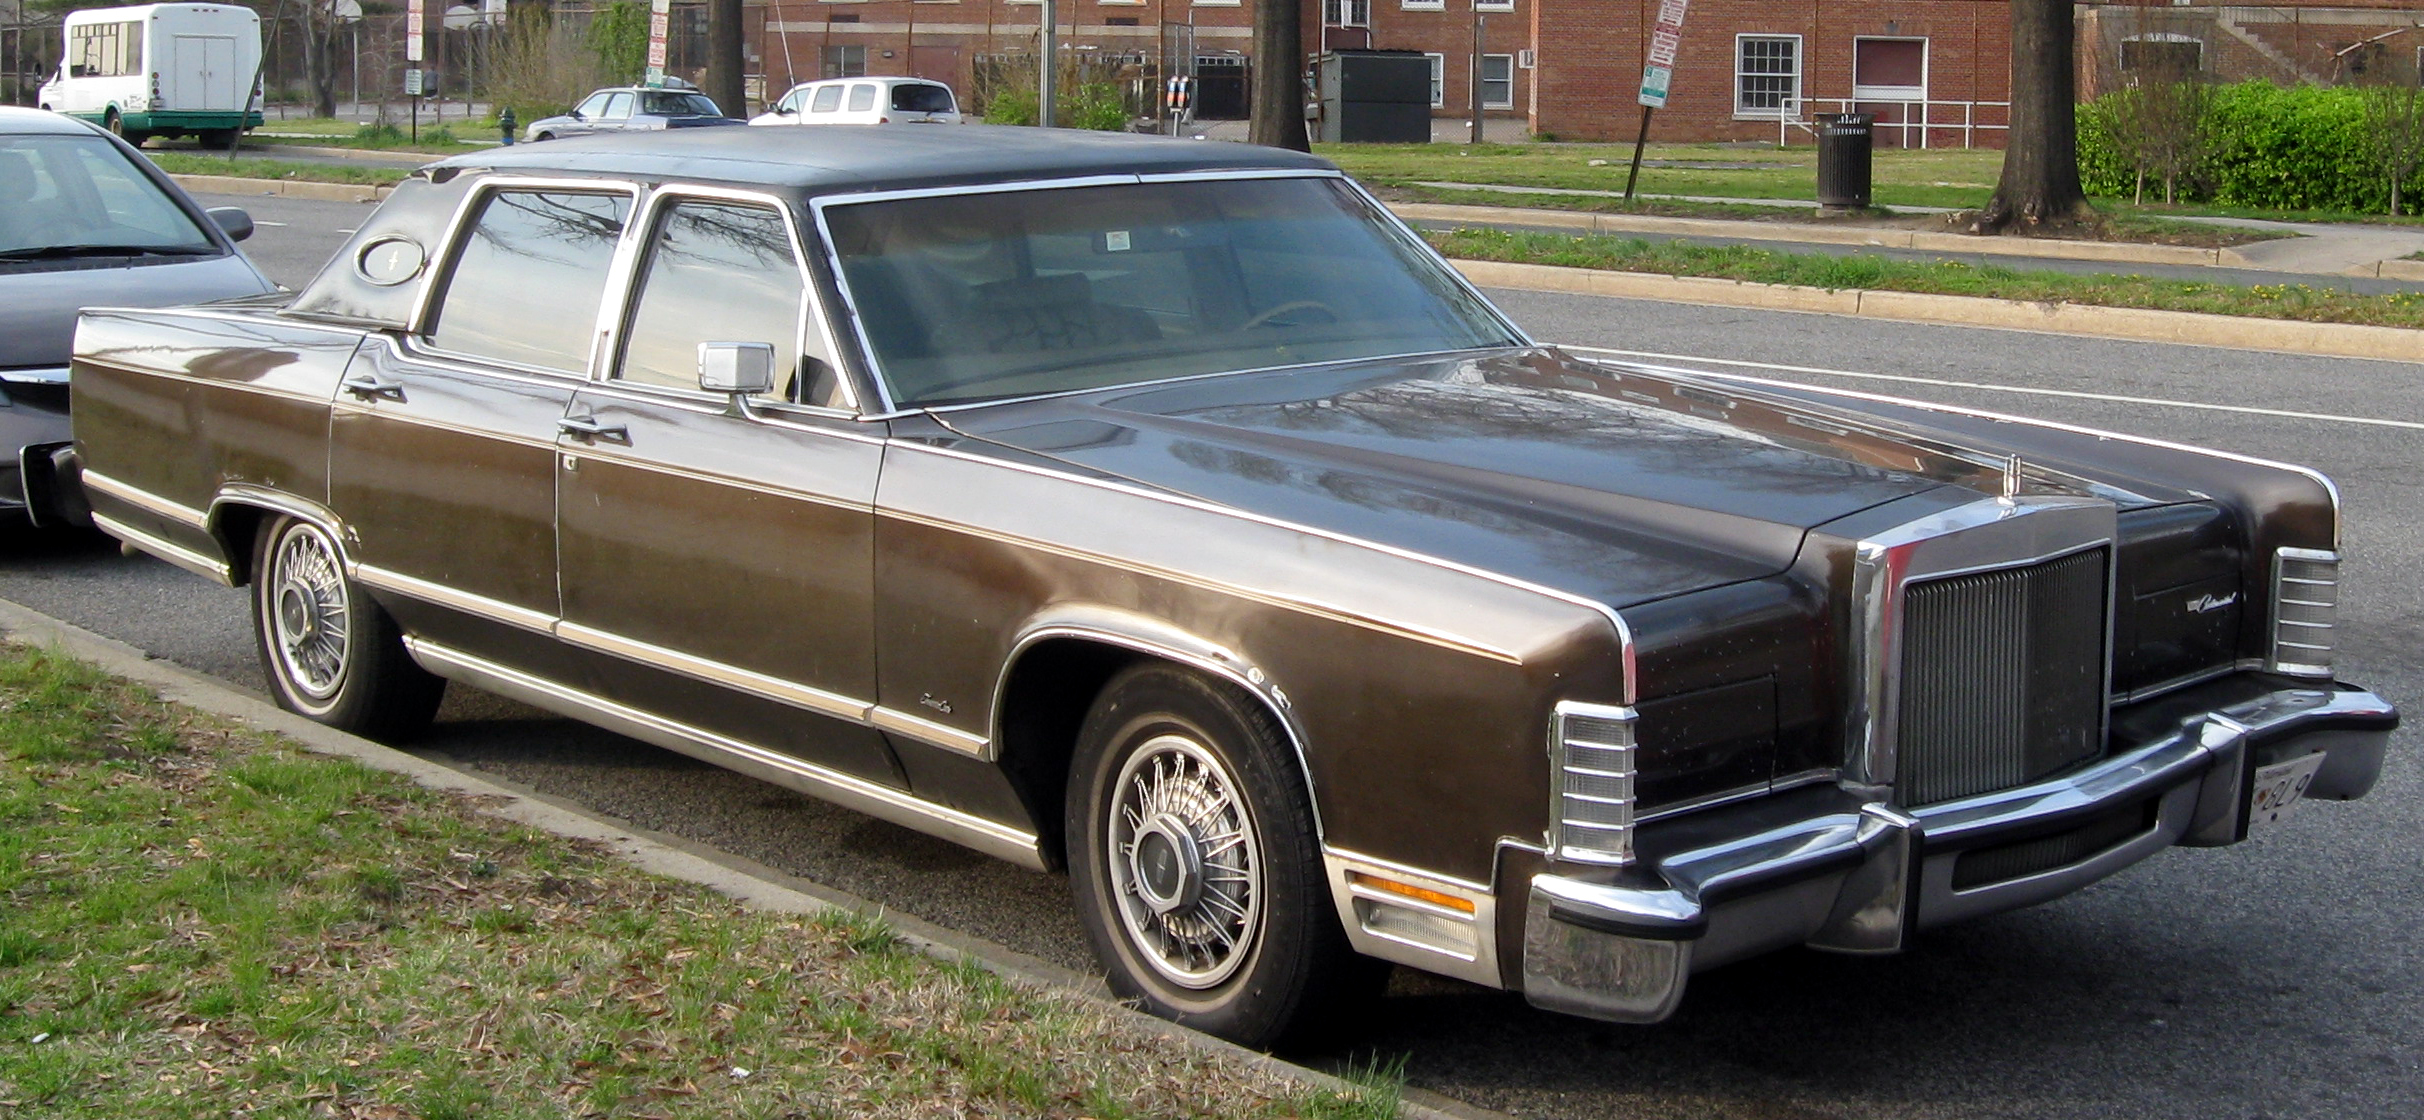 file lincoln continental town car 04 10 wikimedia commons. Black Bedroom Furniture Sets. Home Design Ideas